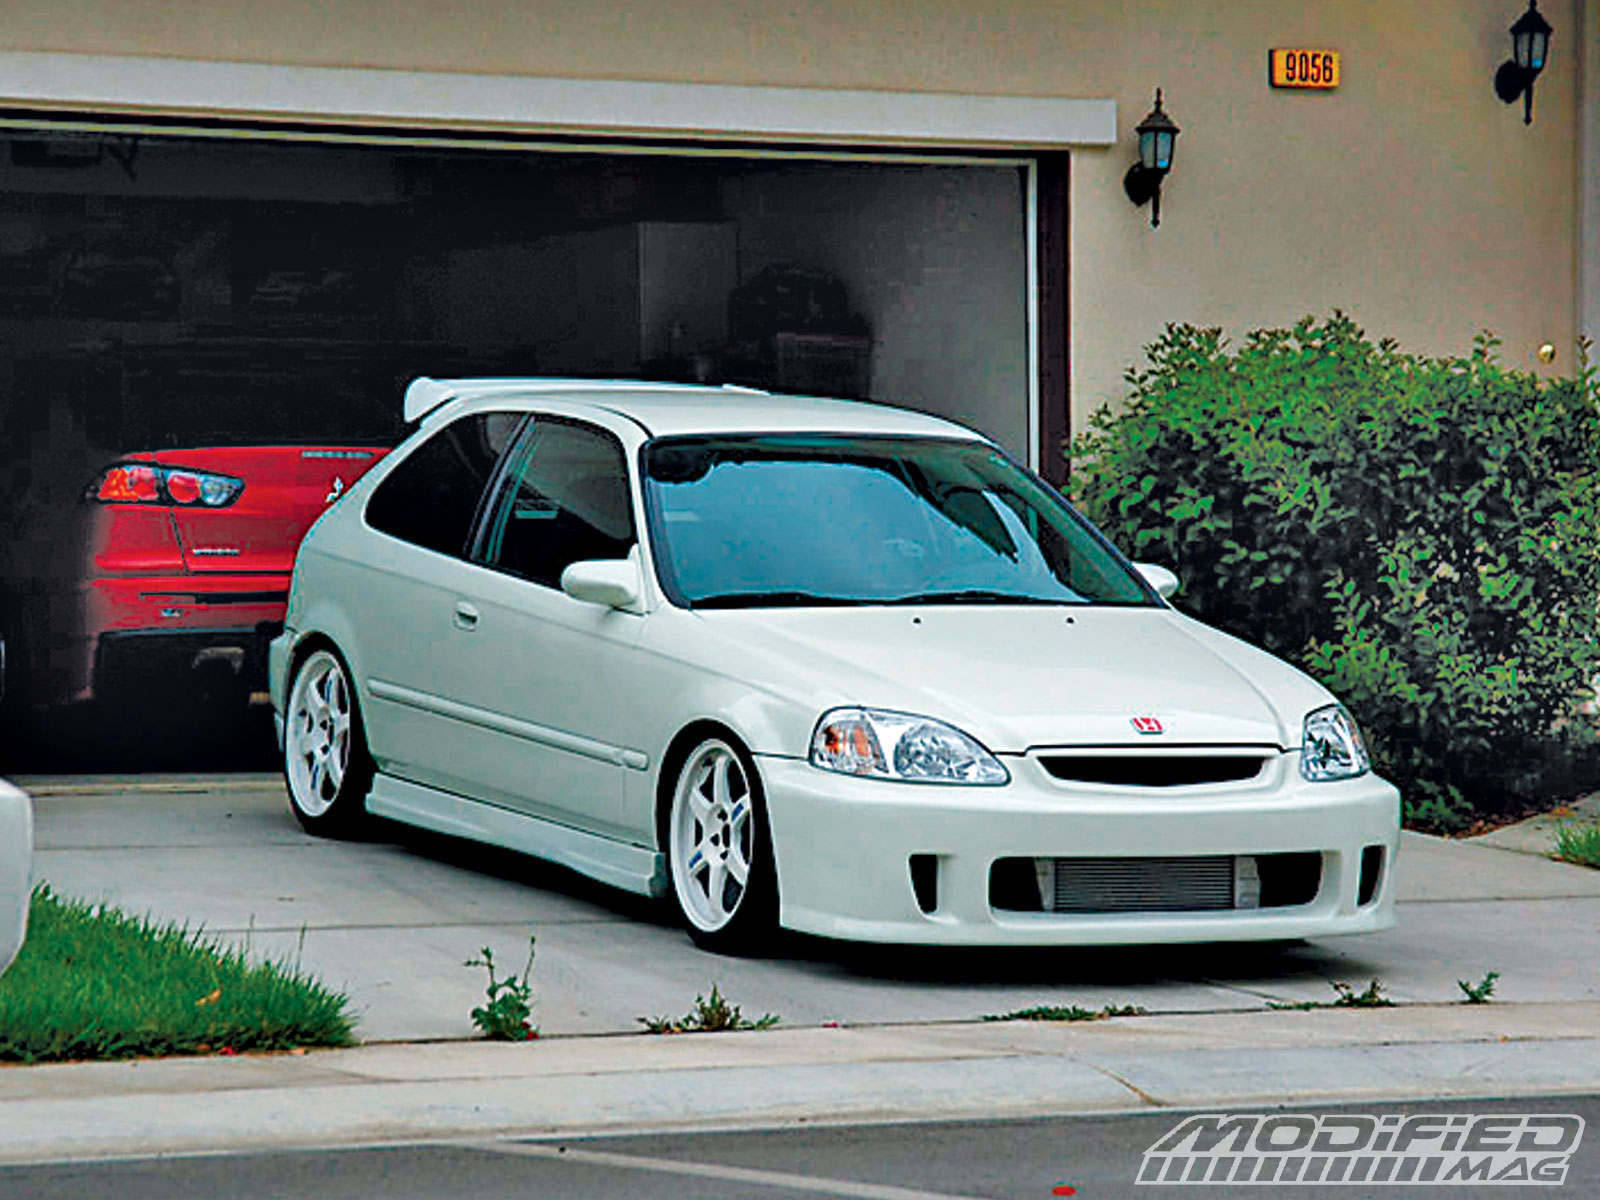 acura integra front lip with Wallpaper Honda Ek on 301879410496 together with I 24242449 Mazda 2 3dcarbon Body Kit 5pc 691917 together with I 24242453 Volkswagen Jetta 3dcarbon Body Kit 4pc 691925 together with Ssr furthermore 4622 Goldy Jud Lagunas 1990 Honda Civic.